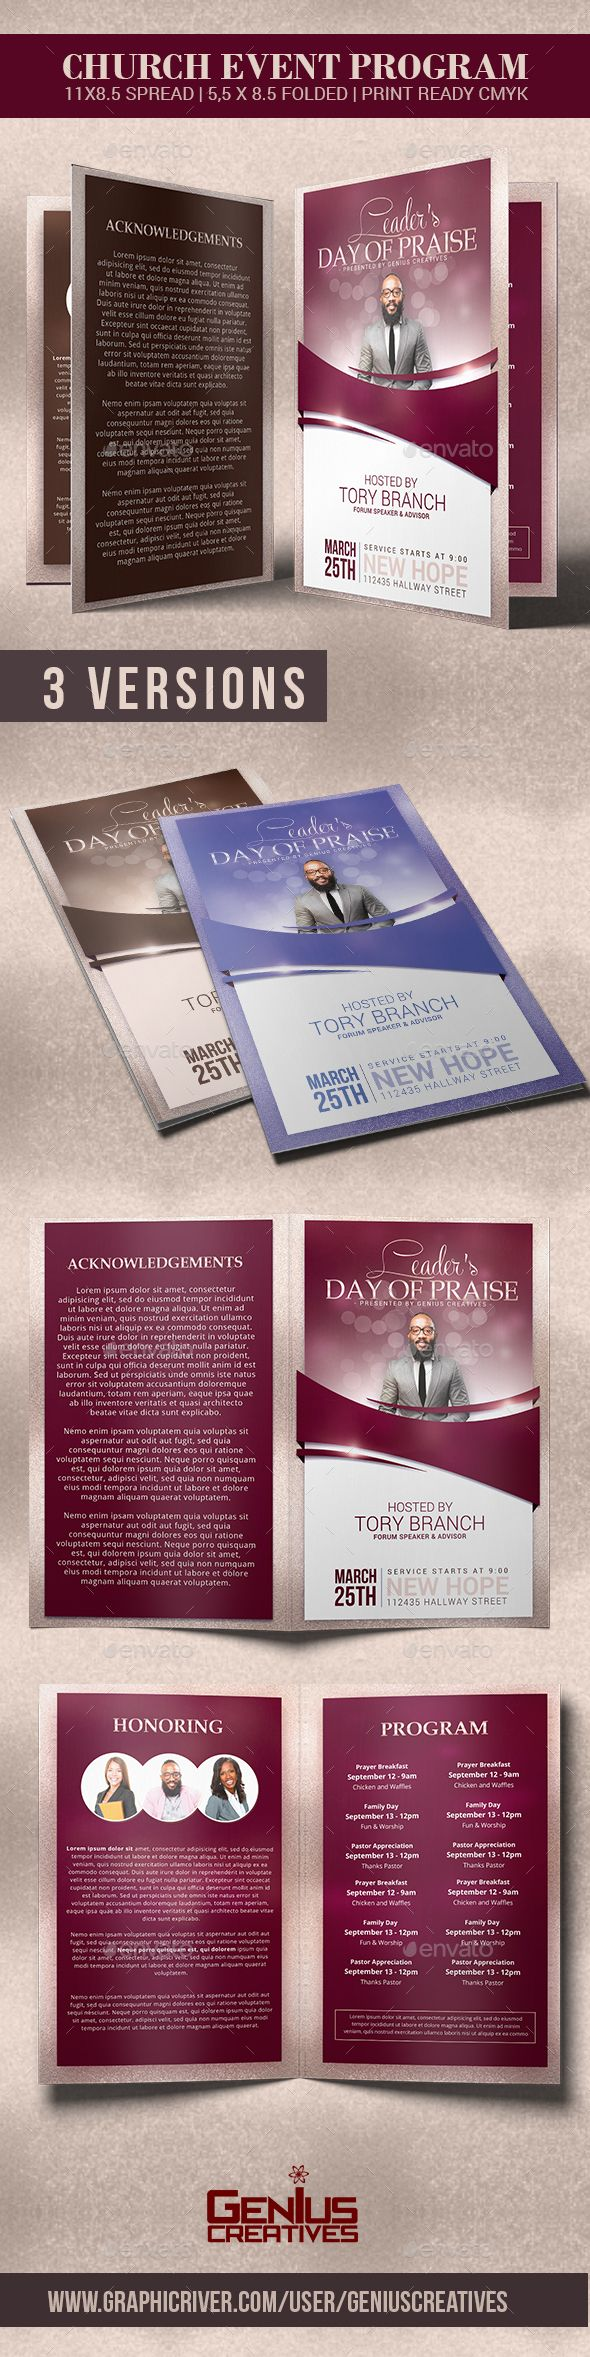 LeaderS Day Of Praise Church Program Template  Program Template